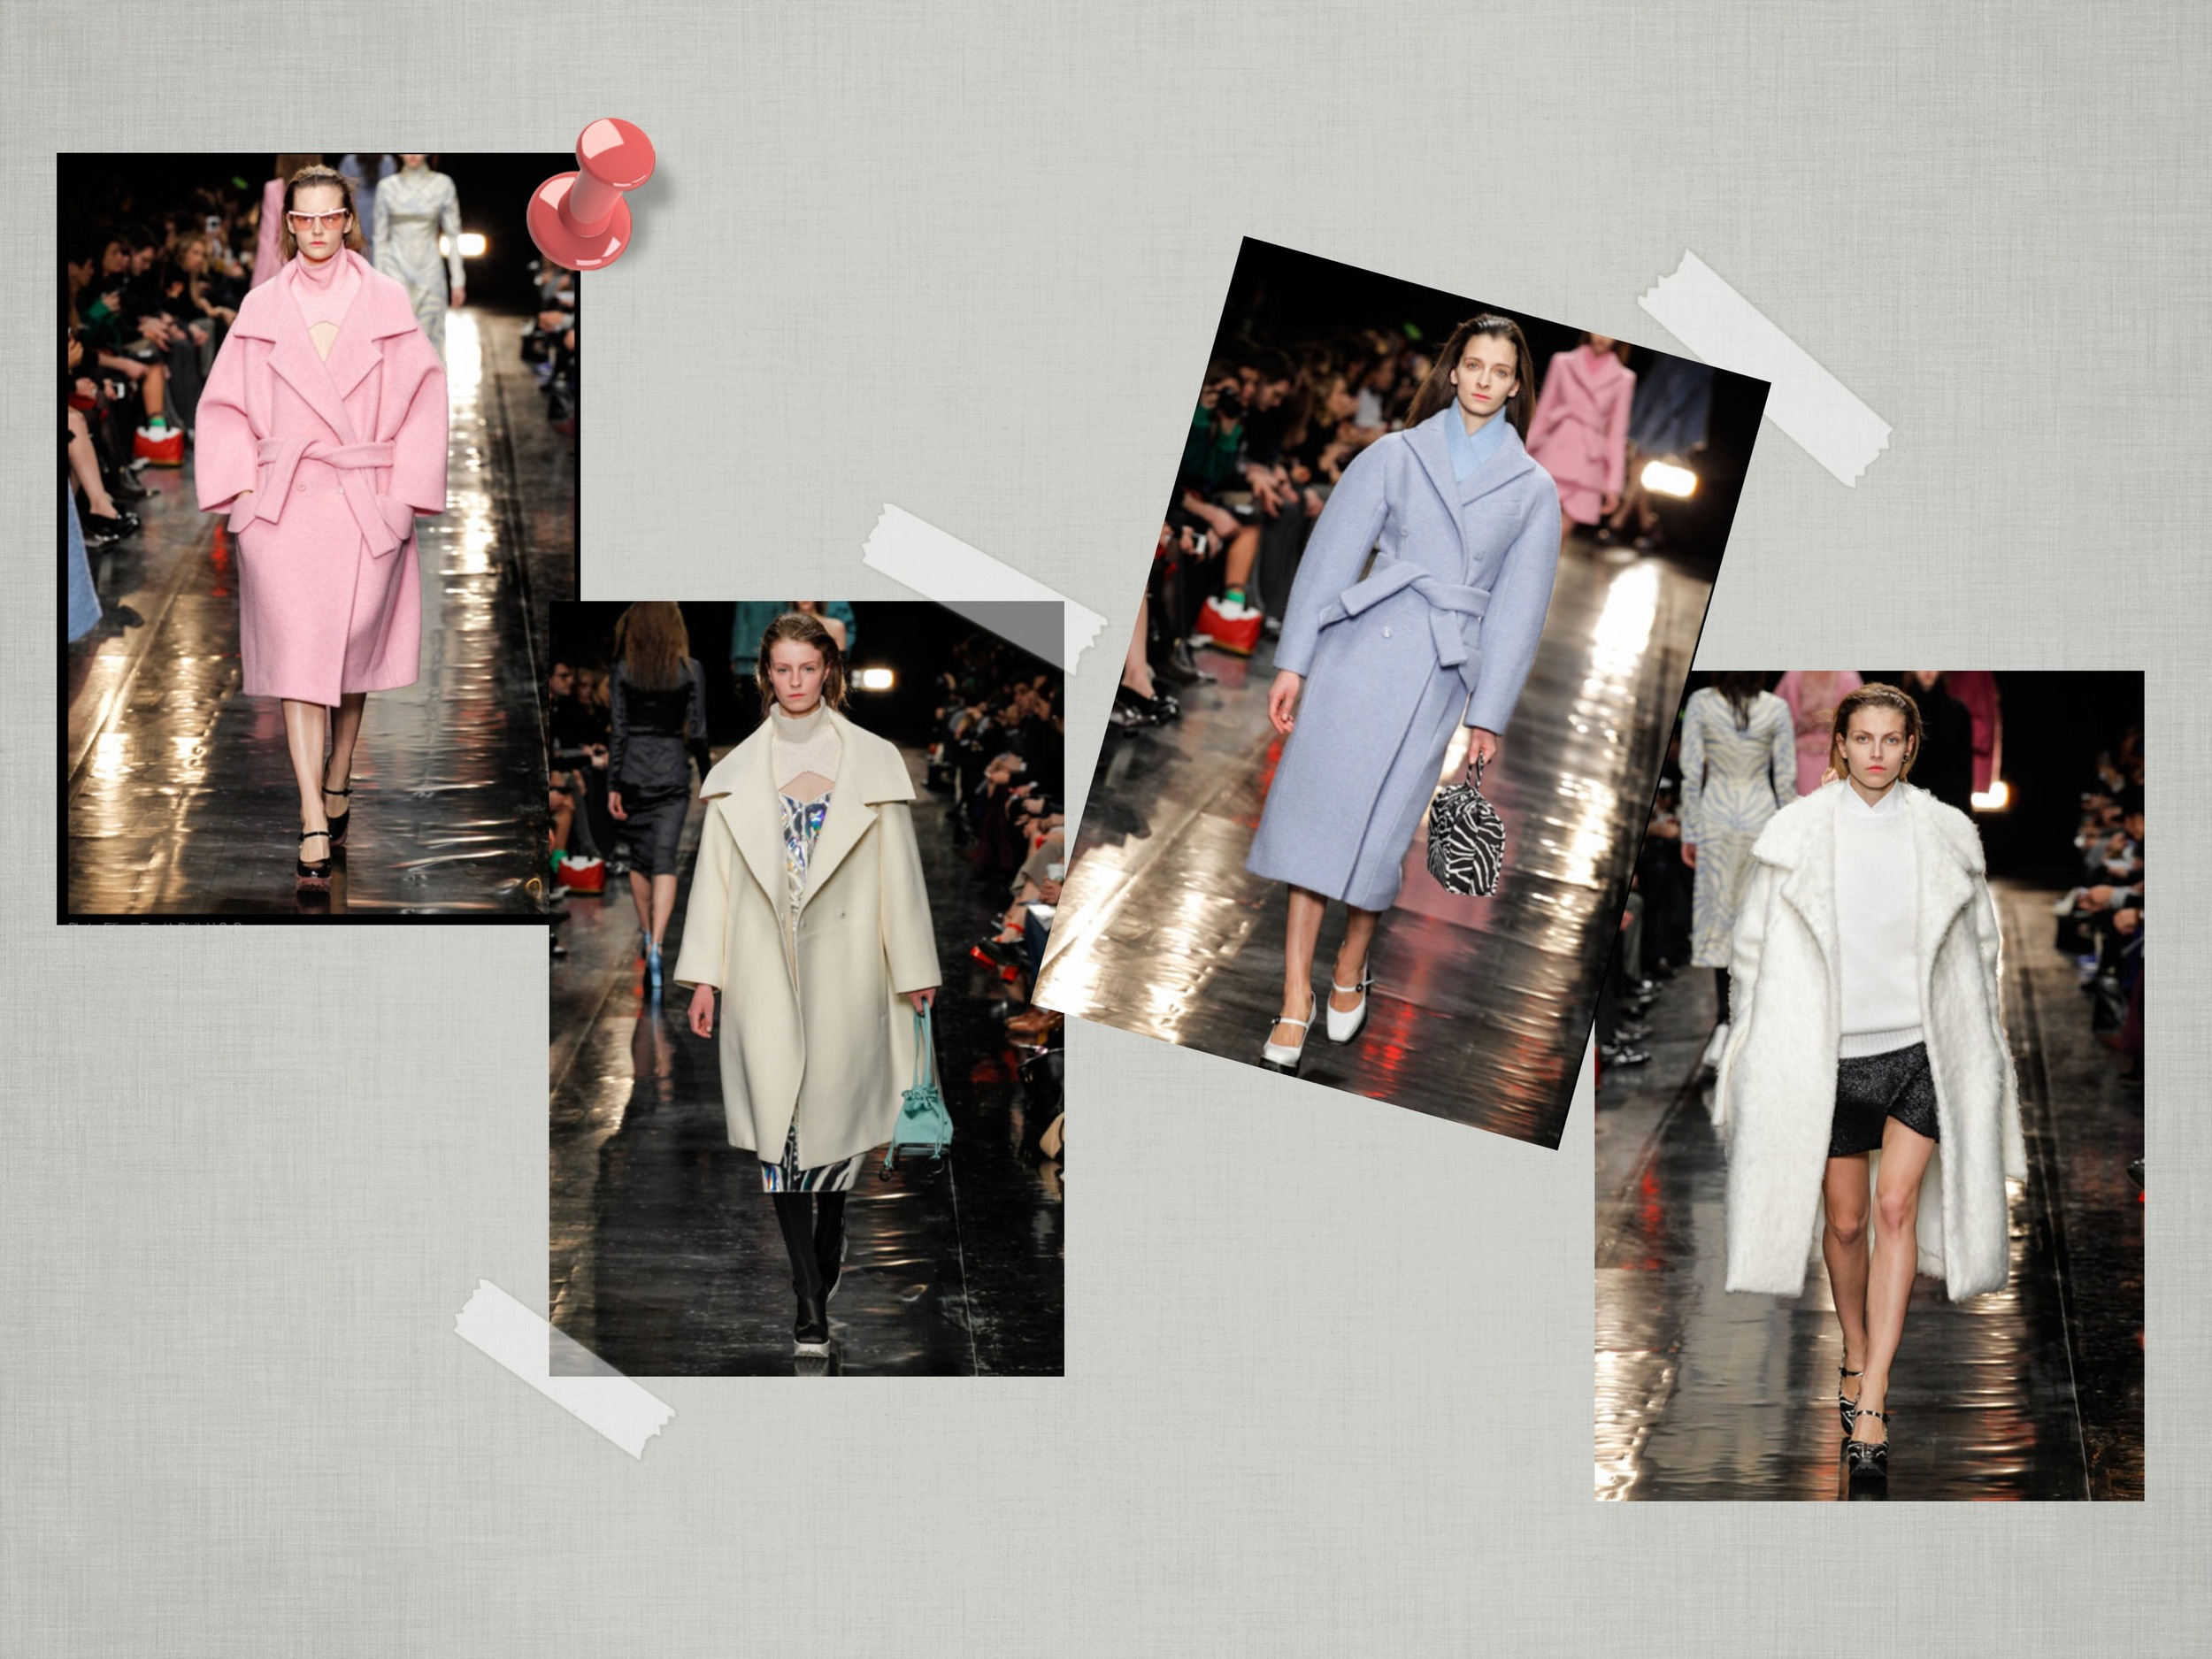 Oversized, belted, and in pastel hues.. perfection!   Formas amplias, en colores pasteles y con cinturón.. el combo perfecto!